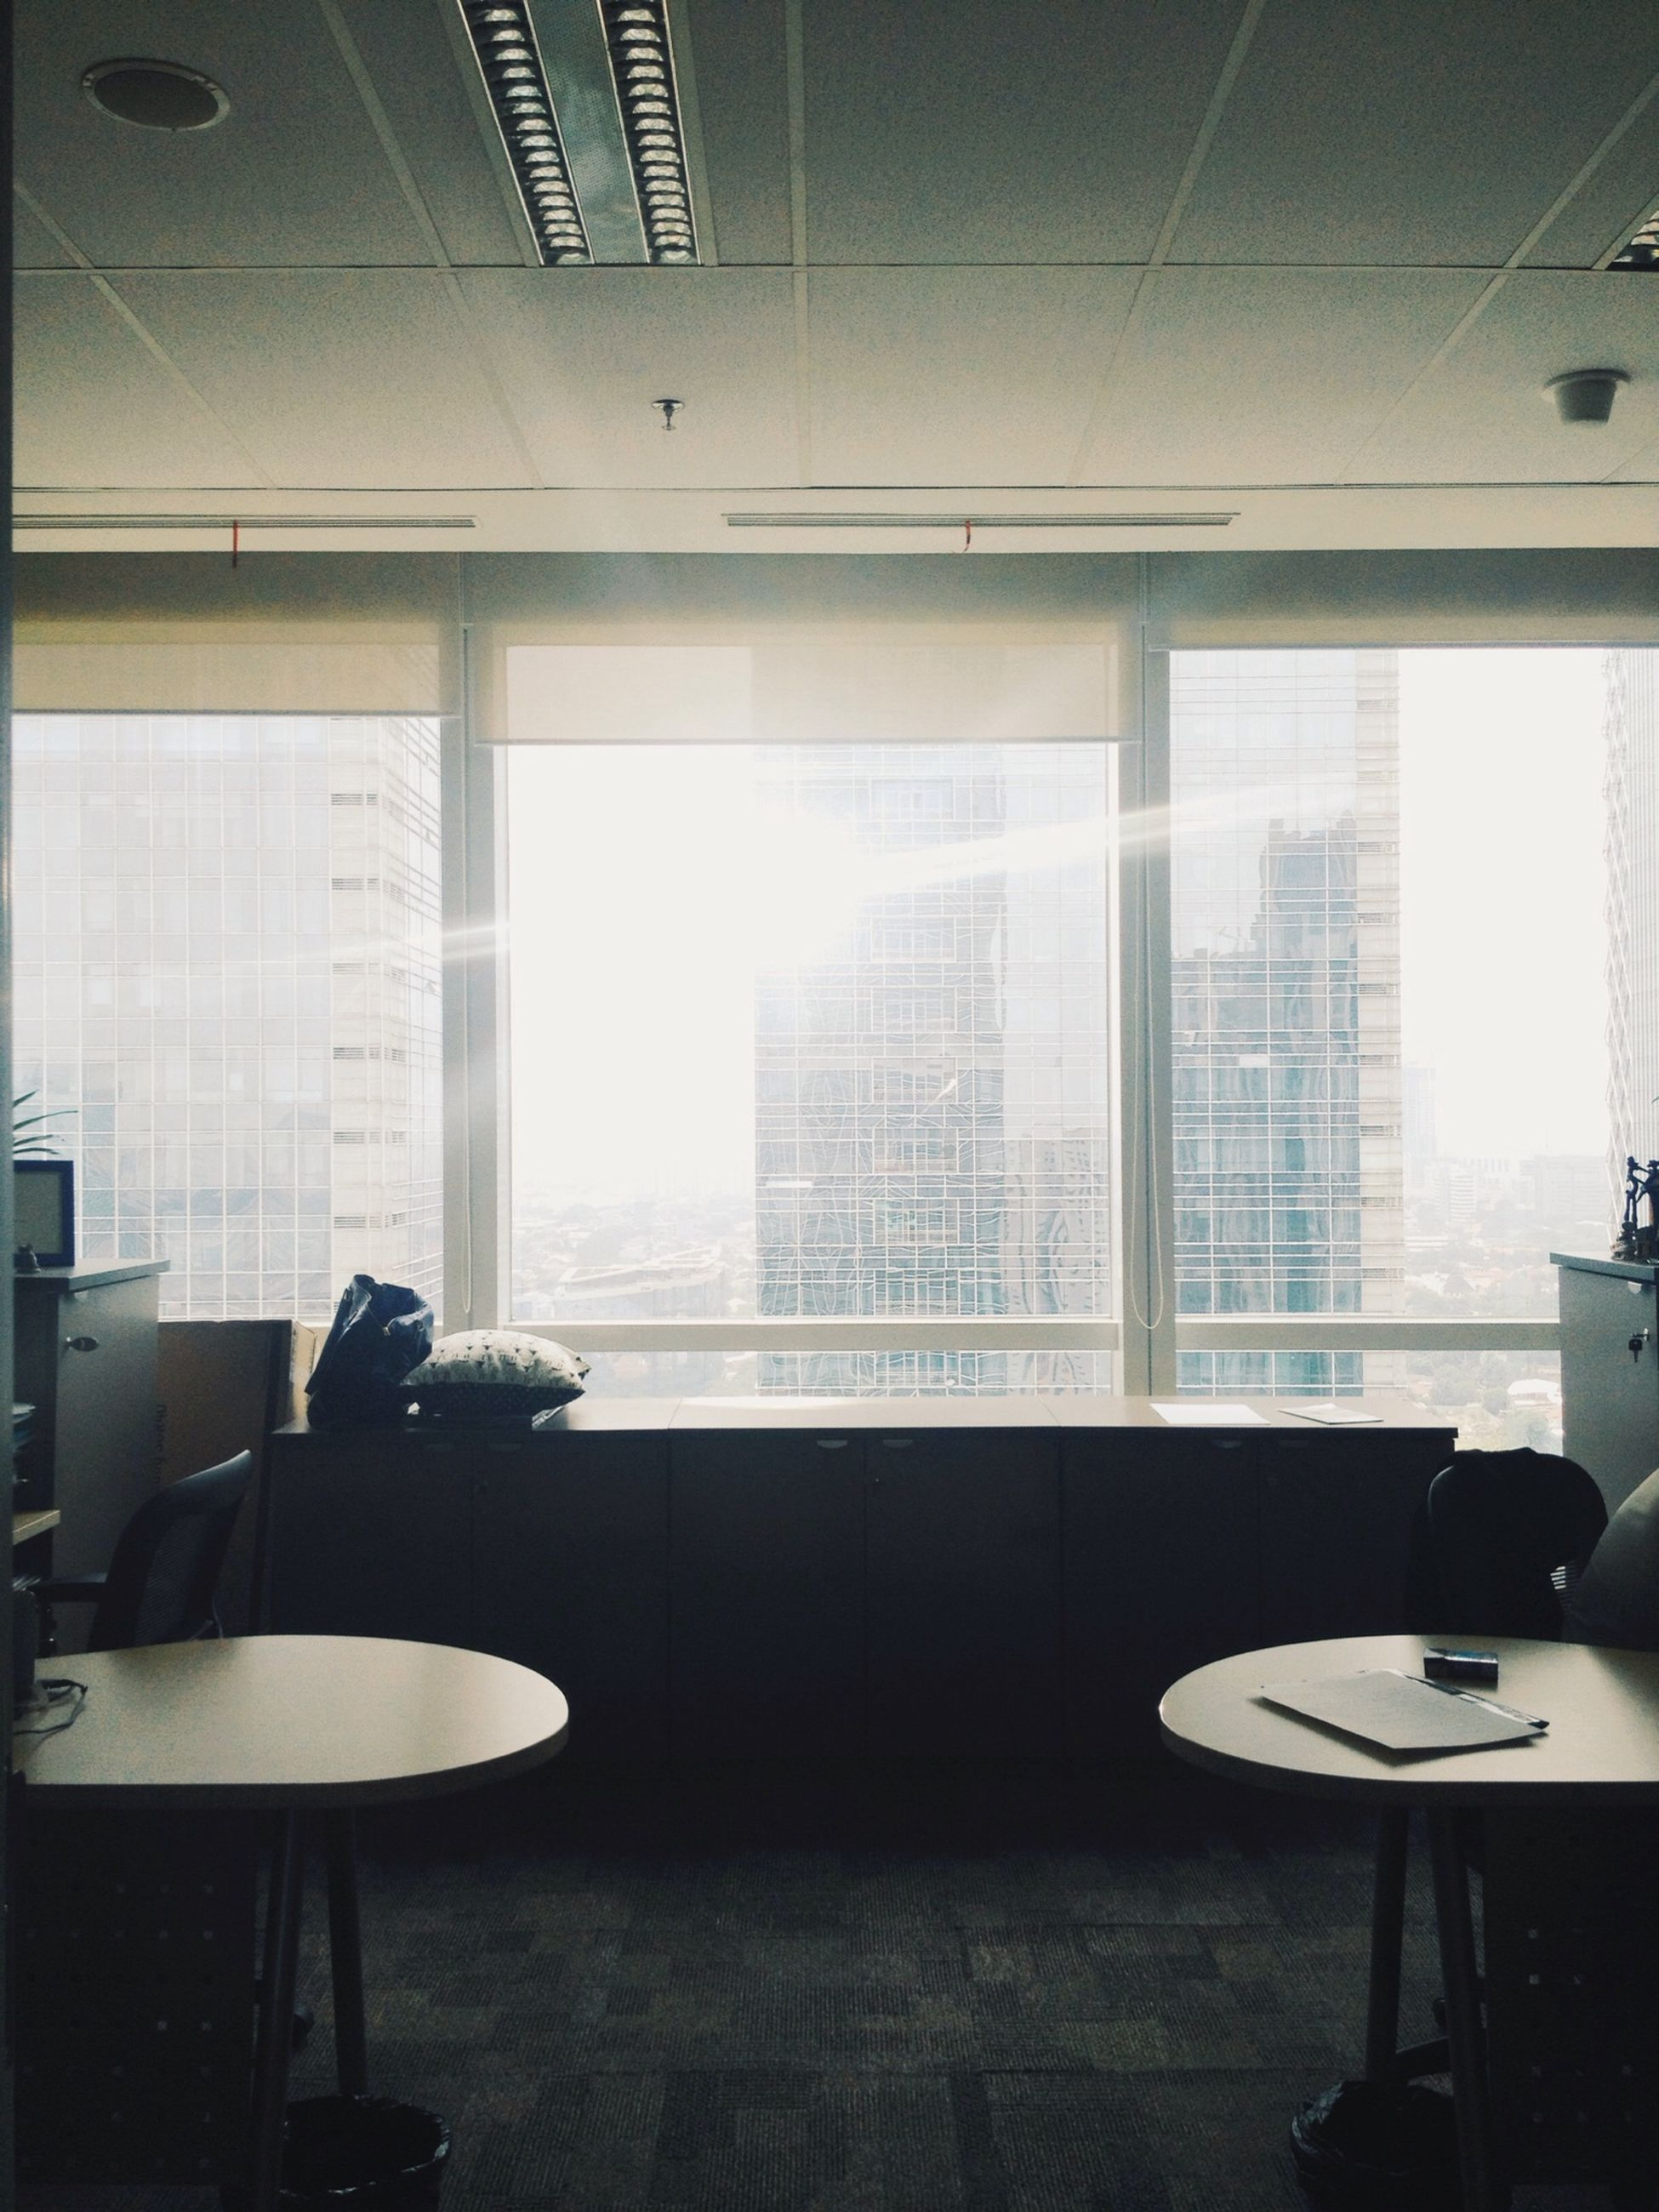 indoors, window, chair, glass - material, empty, home interior, architecture, absence, table, transparent, built structure, domestic room, office, modern, interior, reflection, sunlight, day, restaurant, glass